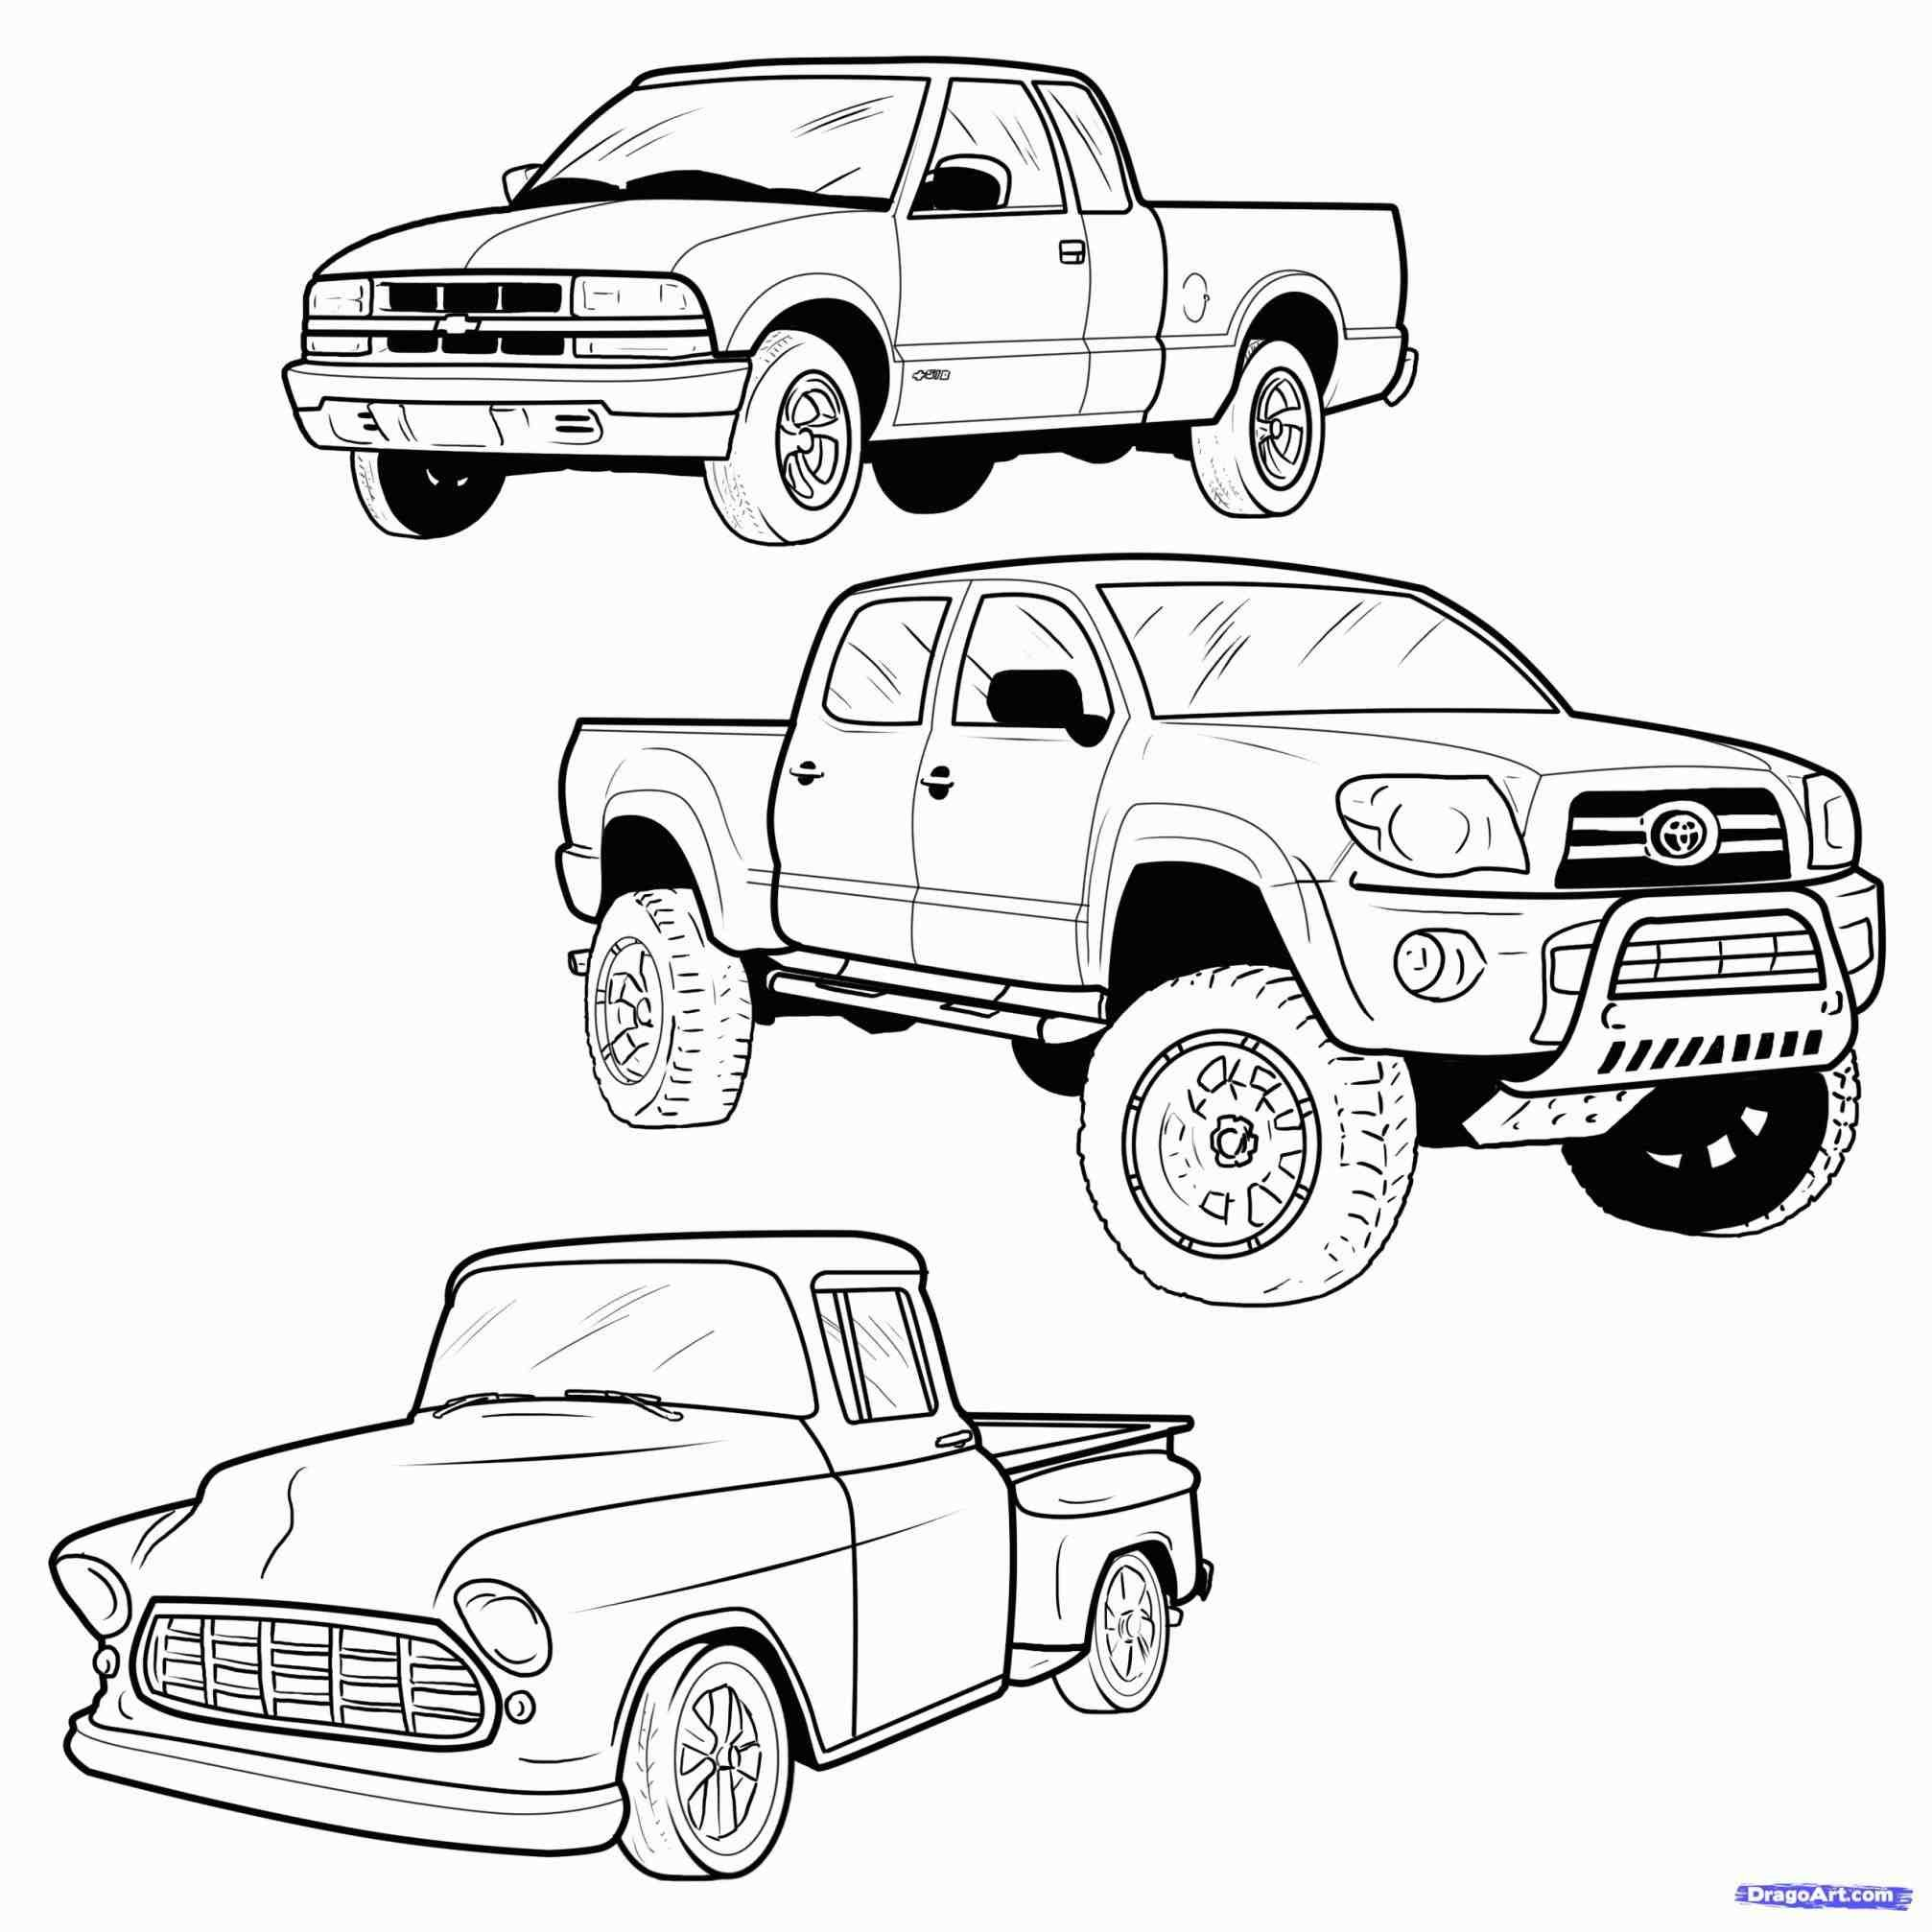 2014x2014 Super Car Range Rover Classic Convertible Coloring Page For Kids